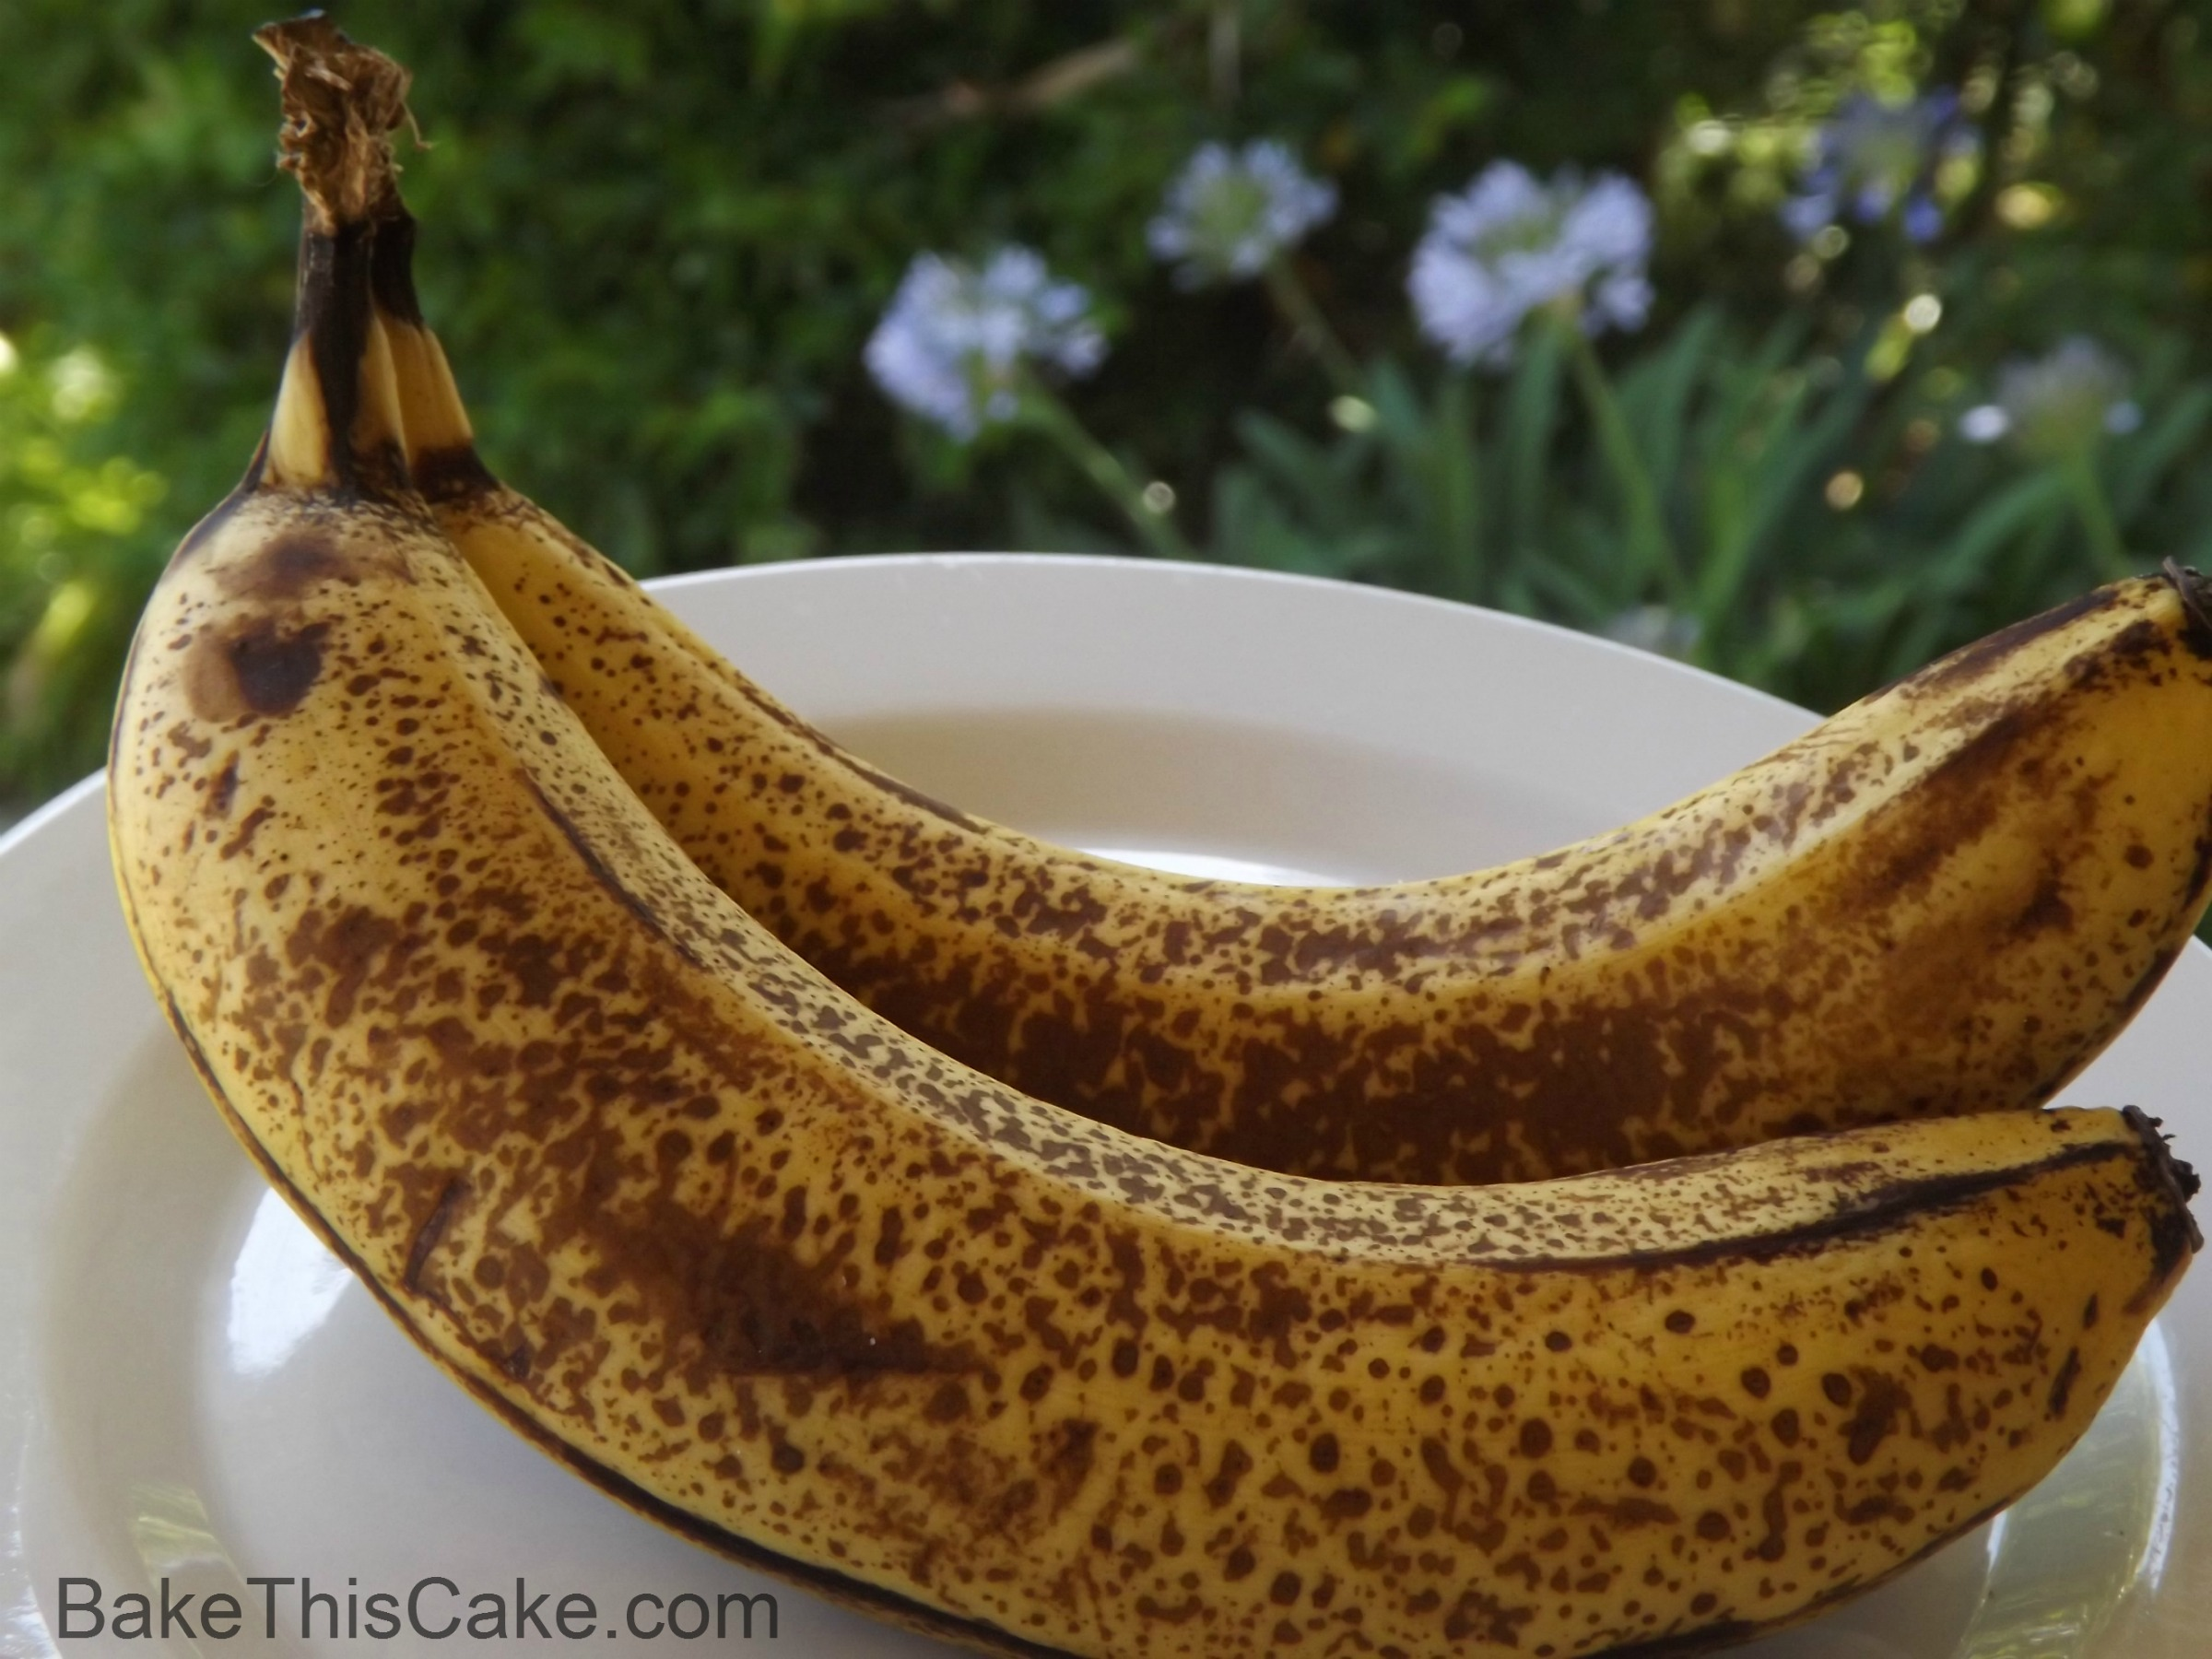 how to get a banana to ripen